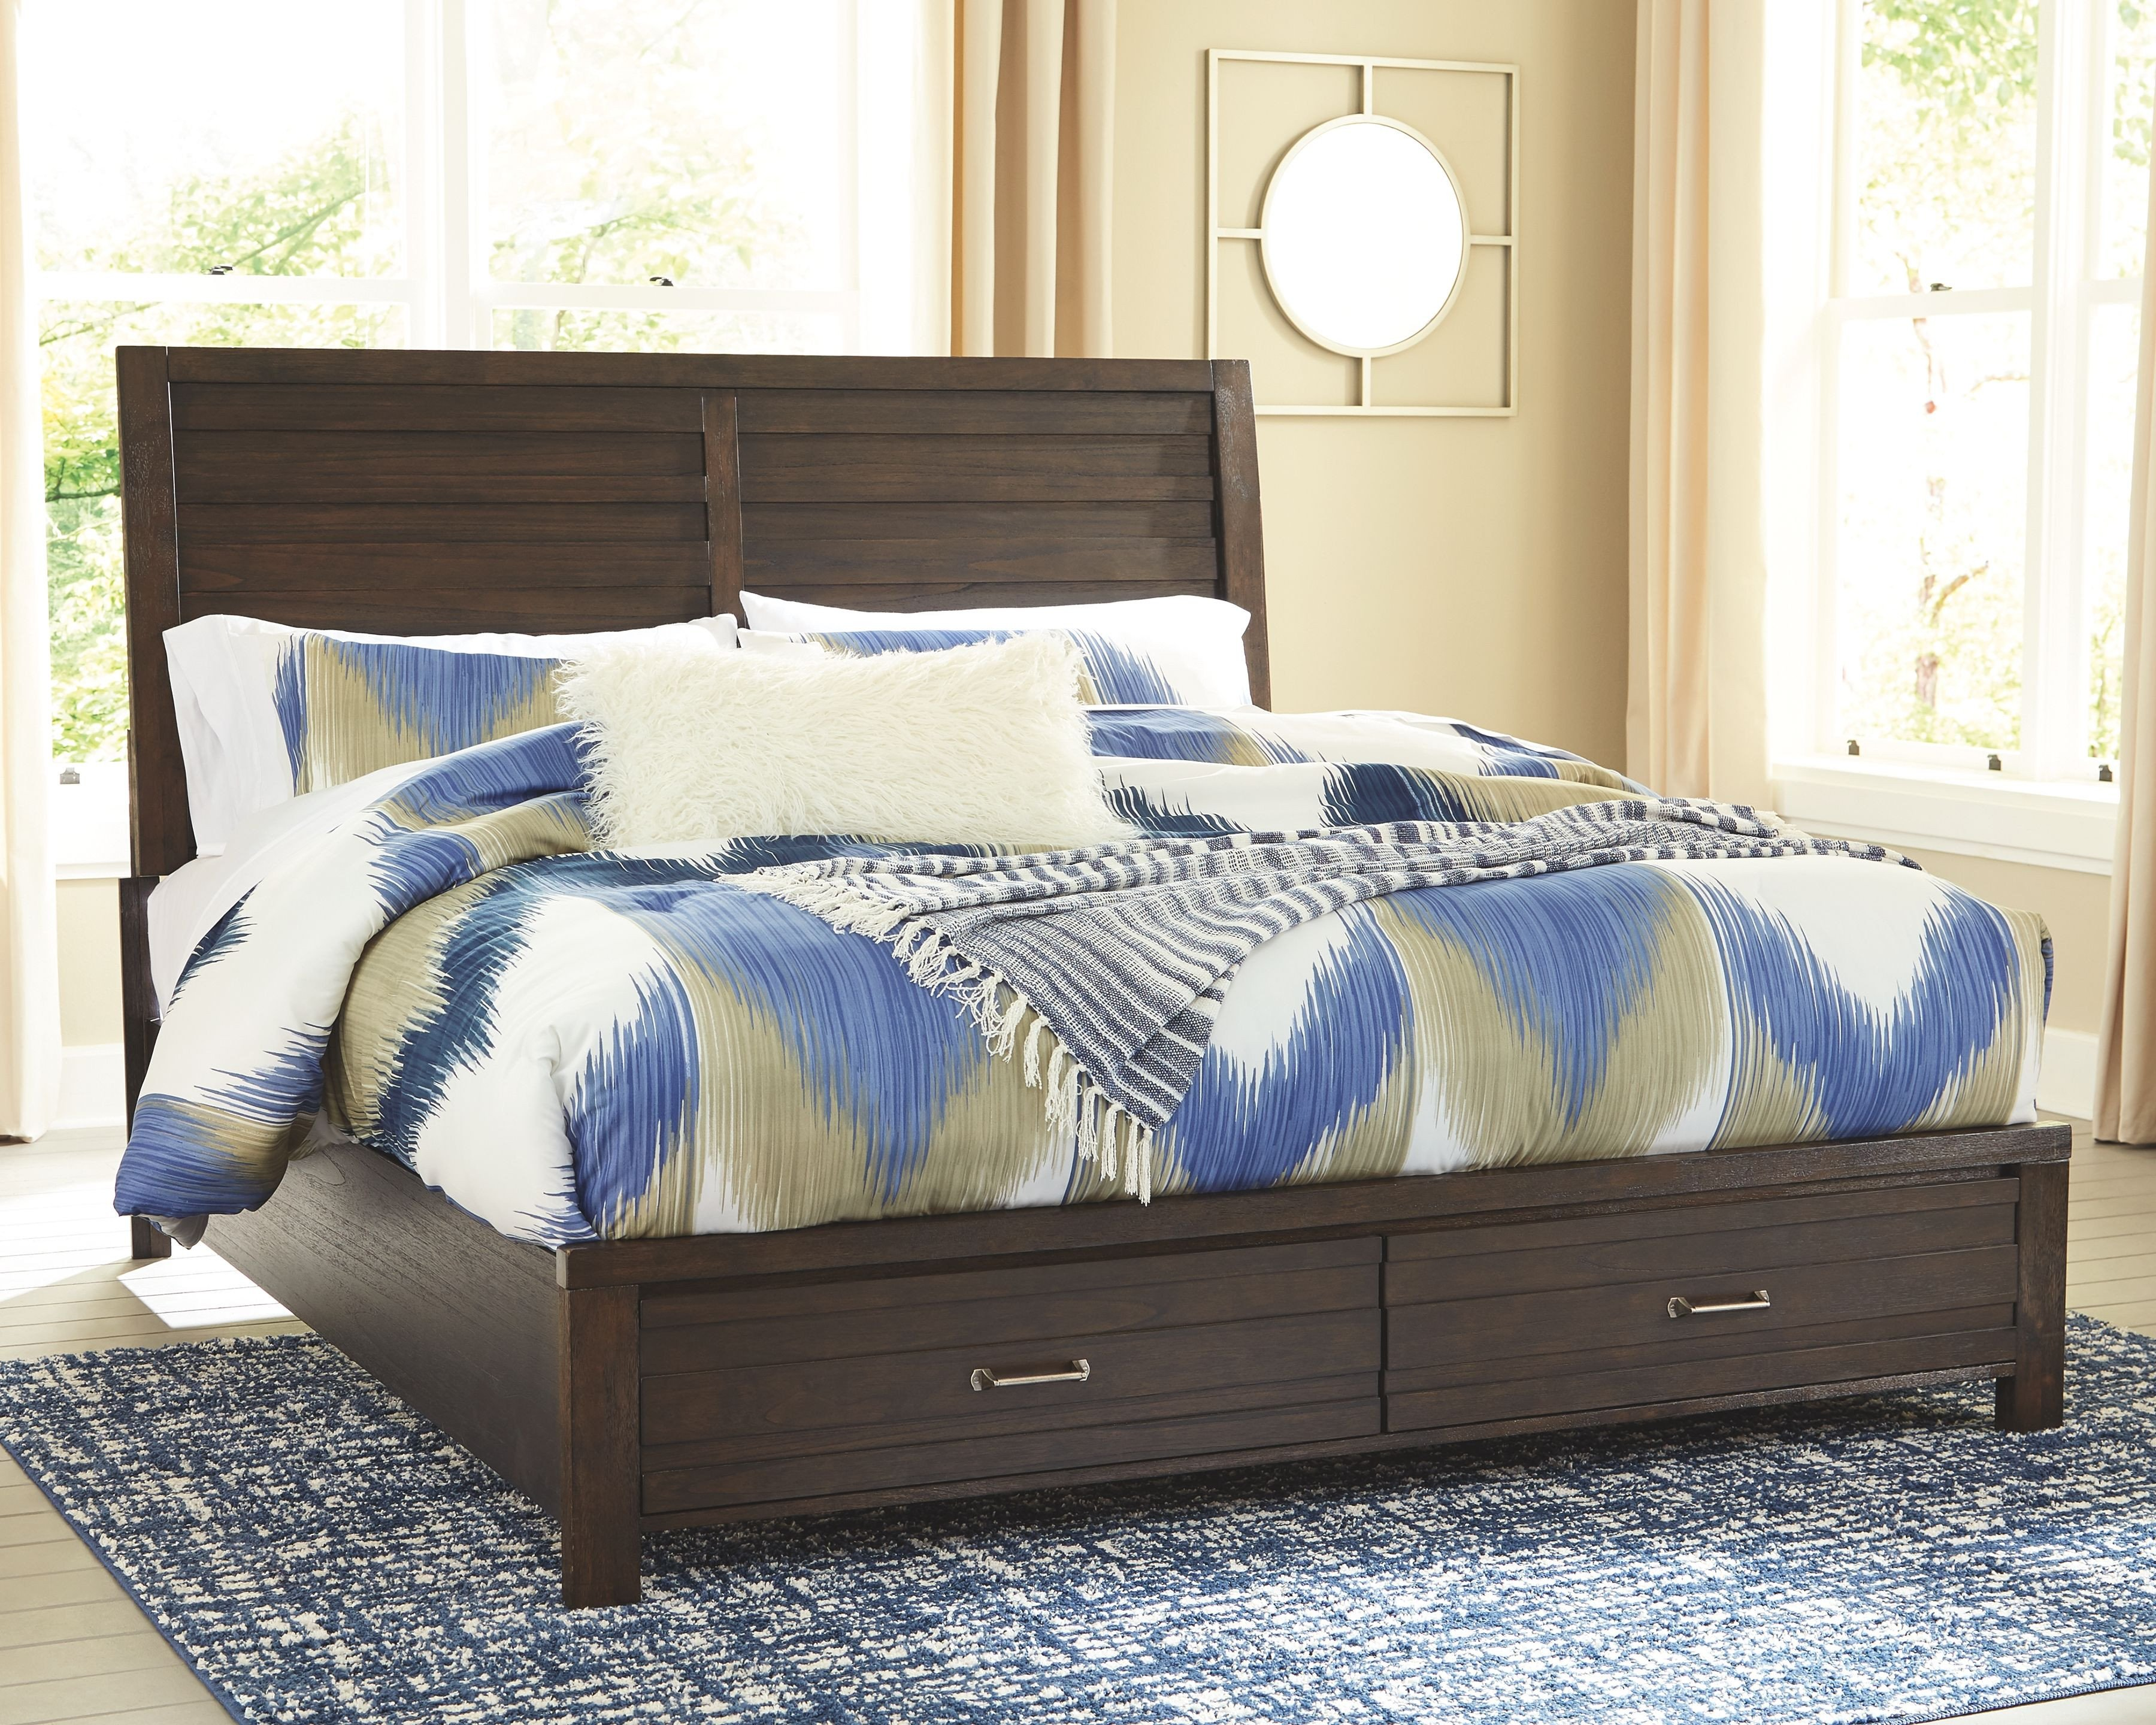 Trisha Yearwood Bedroom Furniture Lovely Darbry California King Panel Bed with Storage Brown